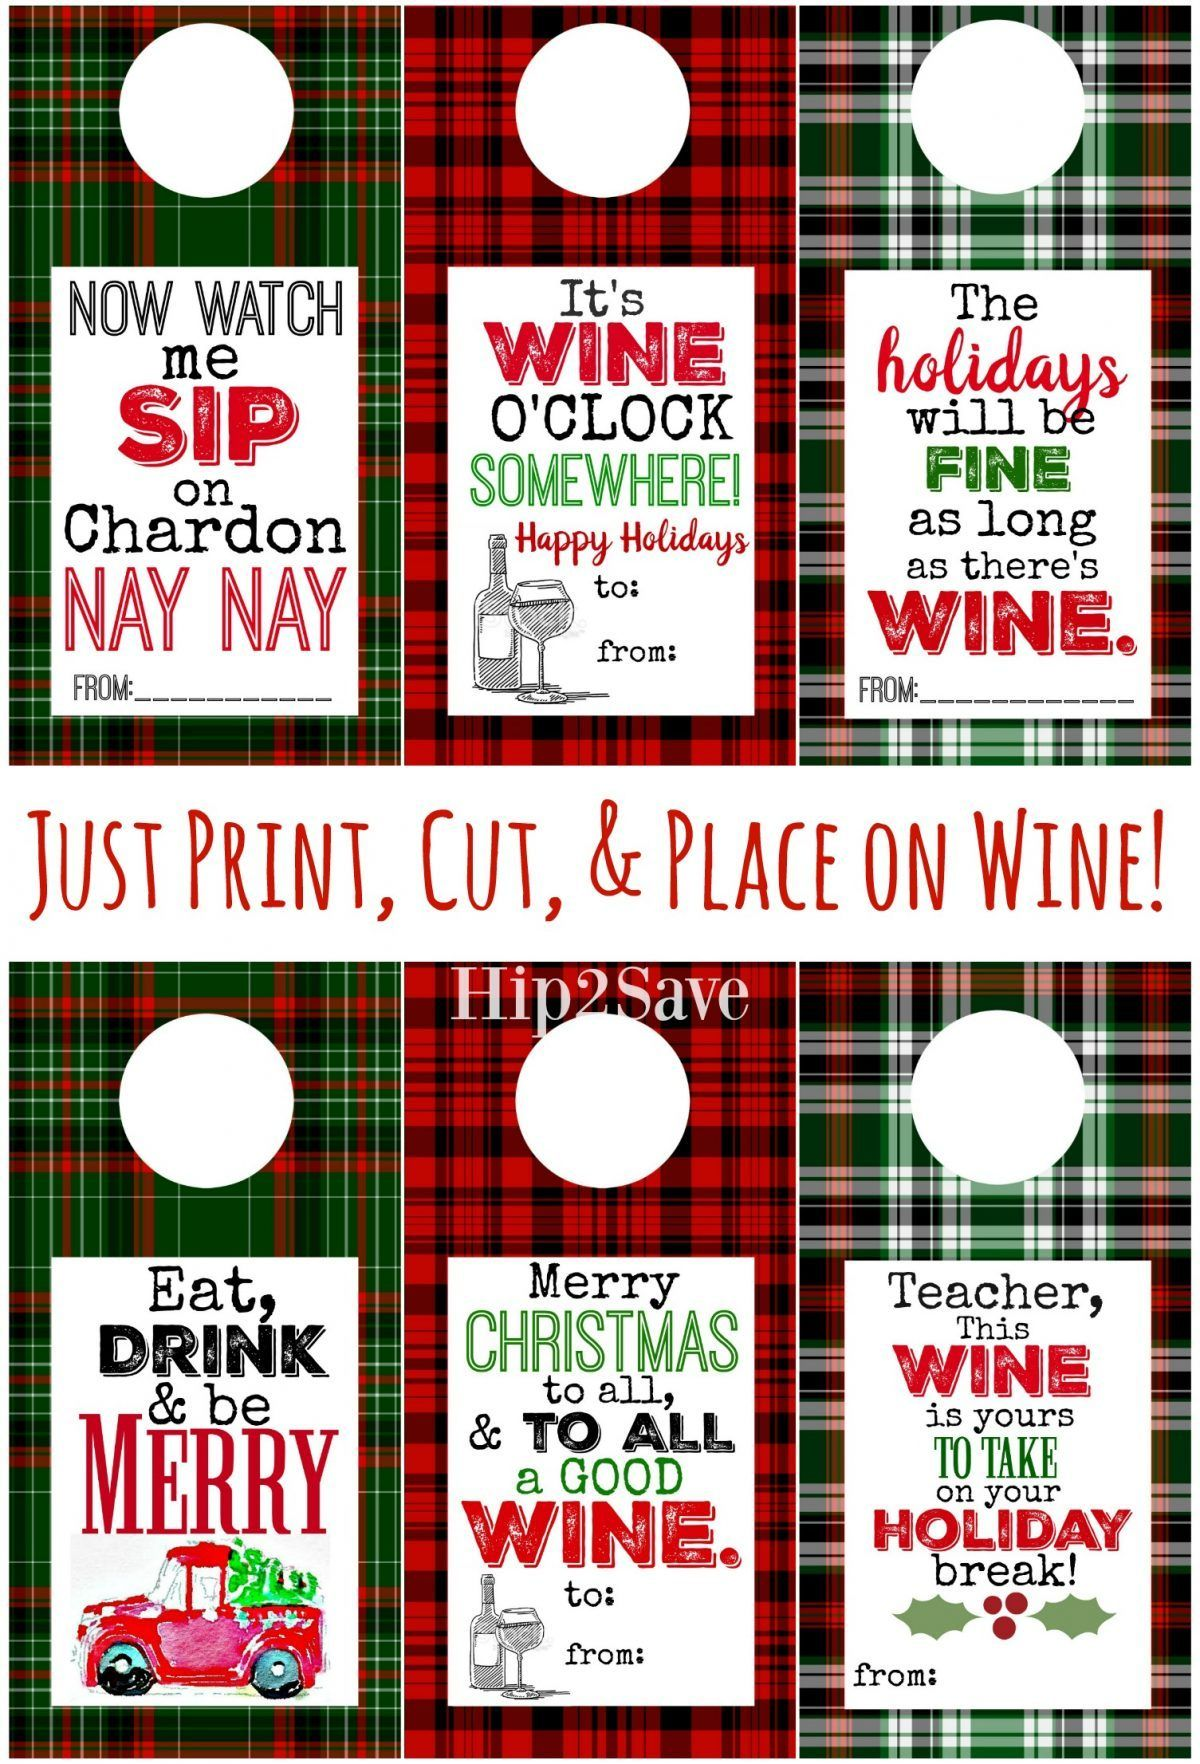 Free Printable Holiday Wine Tags Easy Gift Idea Hip2save Wine Gift Tags Holiday Wine Wine Bottle Gift Tags